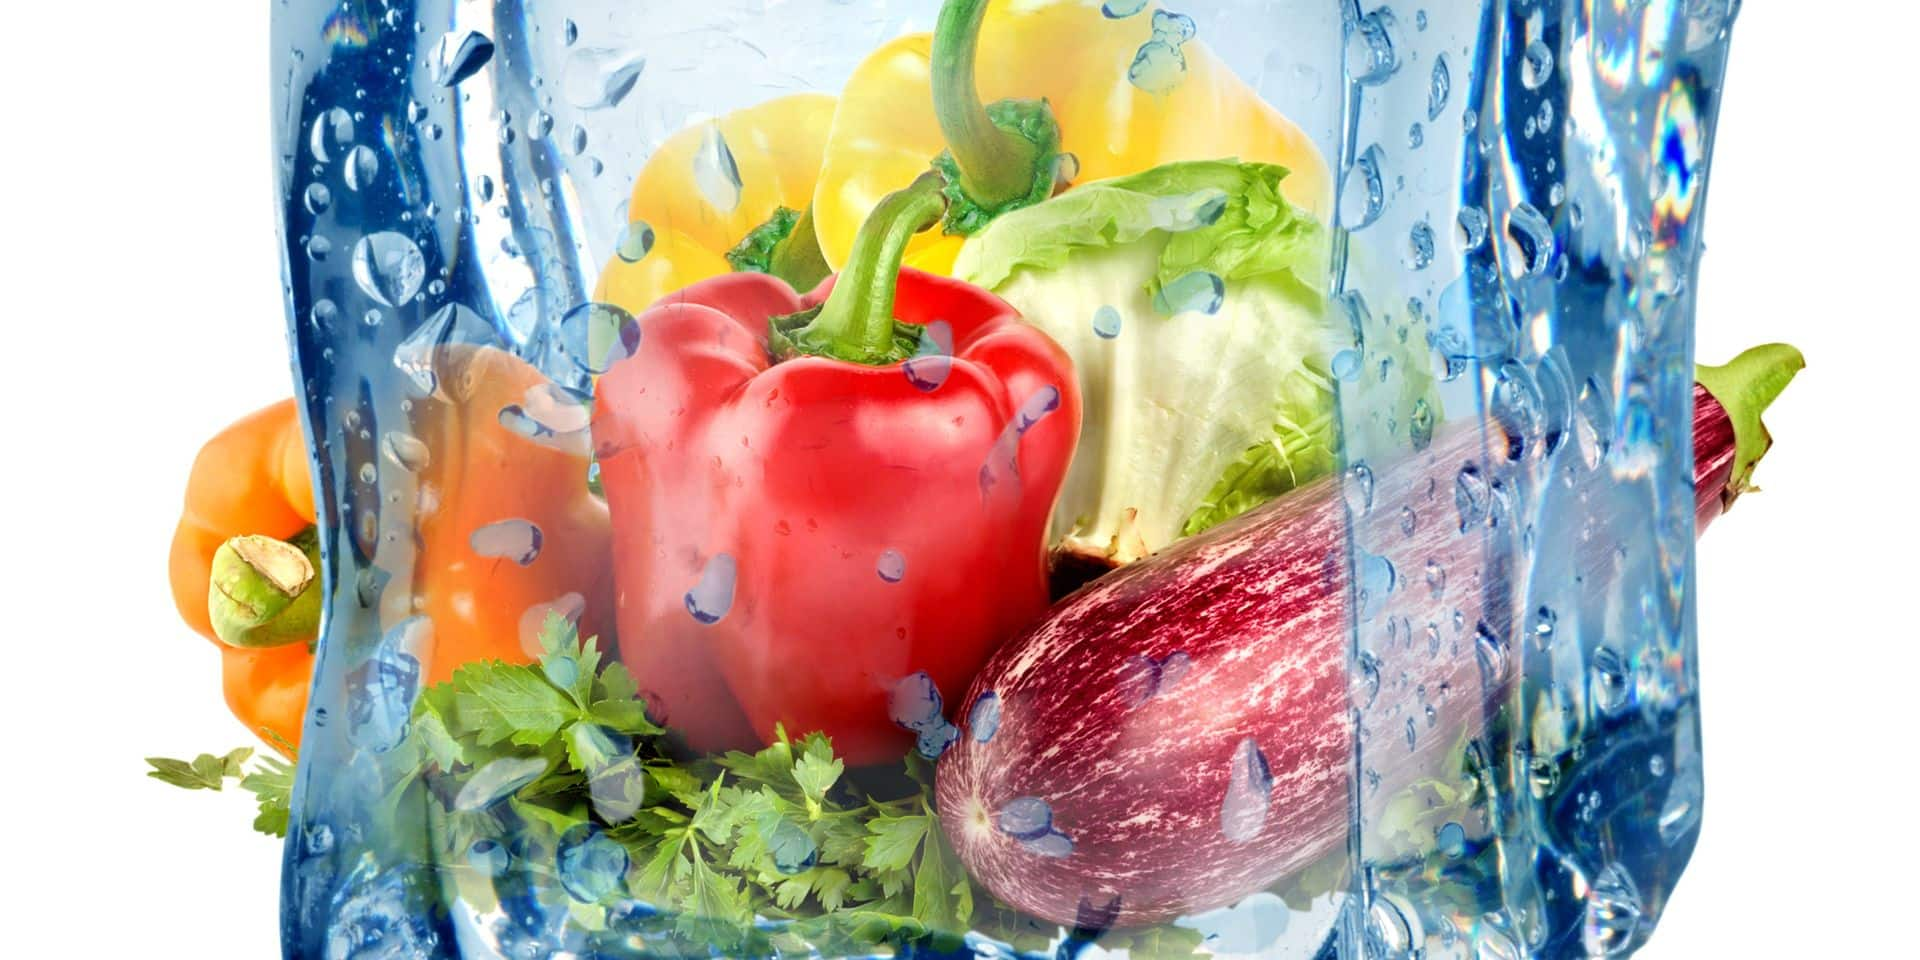 Ice,Cube,And,Vegetables,Isolated,On,A,White,Background